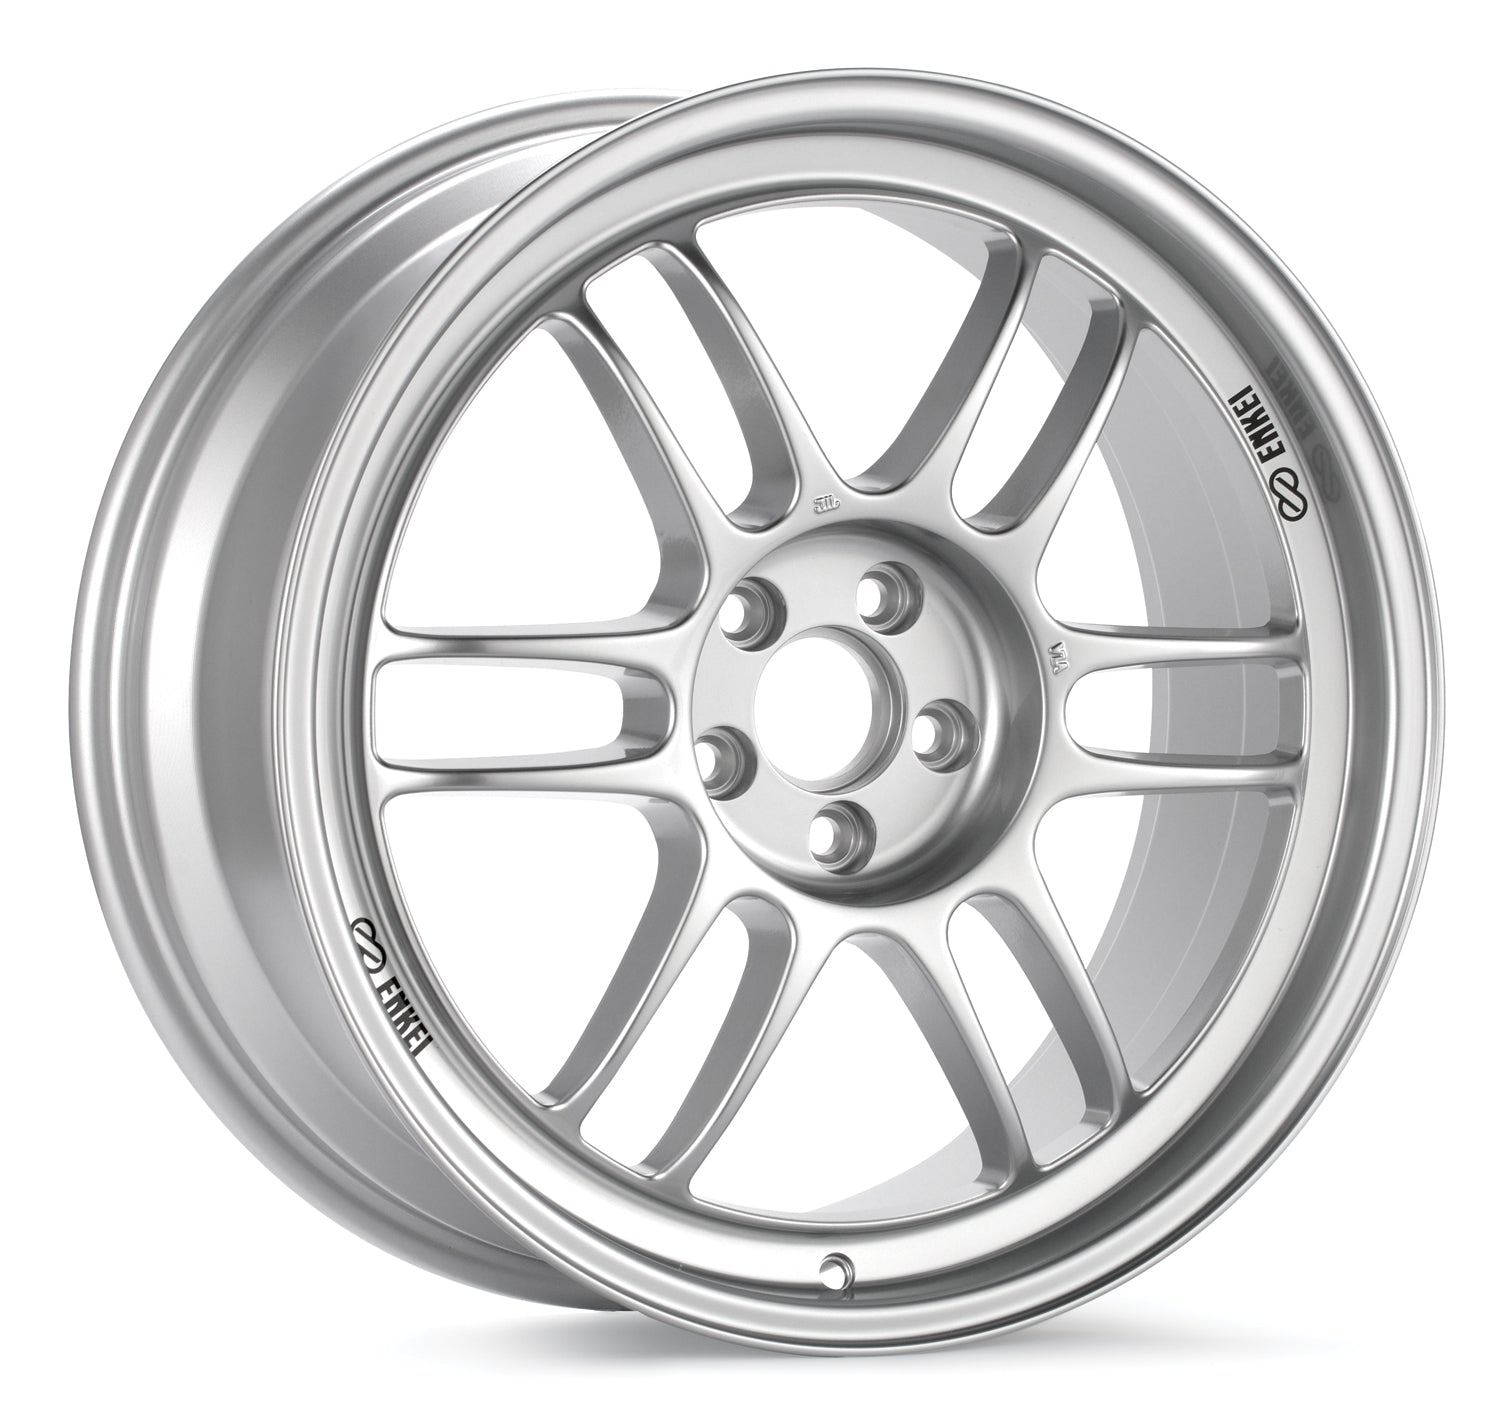 Enkei RPF1 15x8 28mm Offset 4x100 75mm Bore Silver Wheel